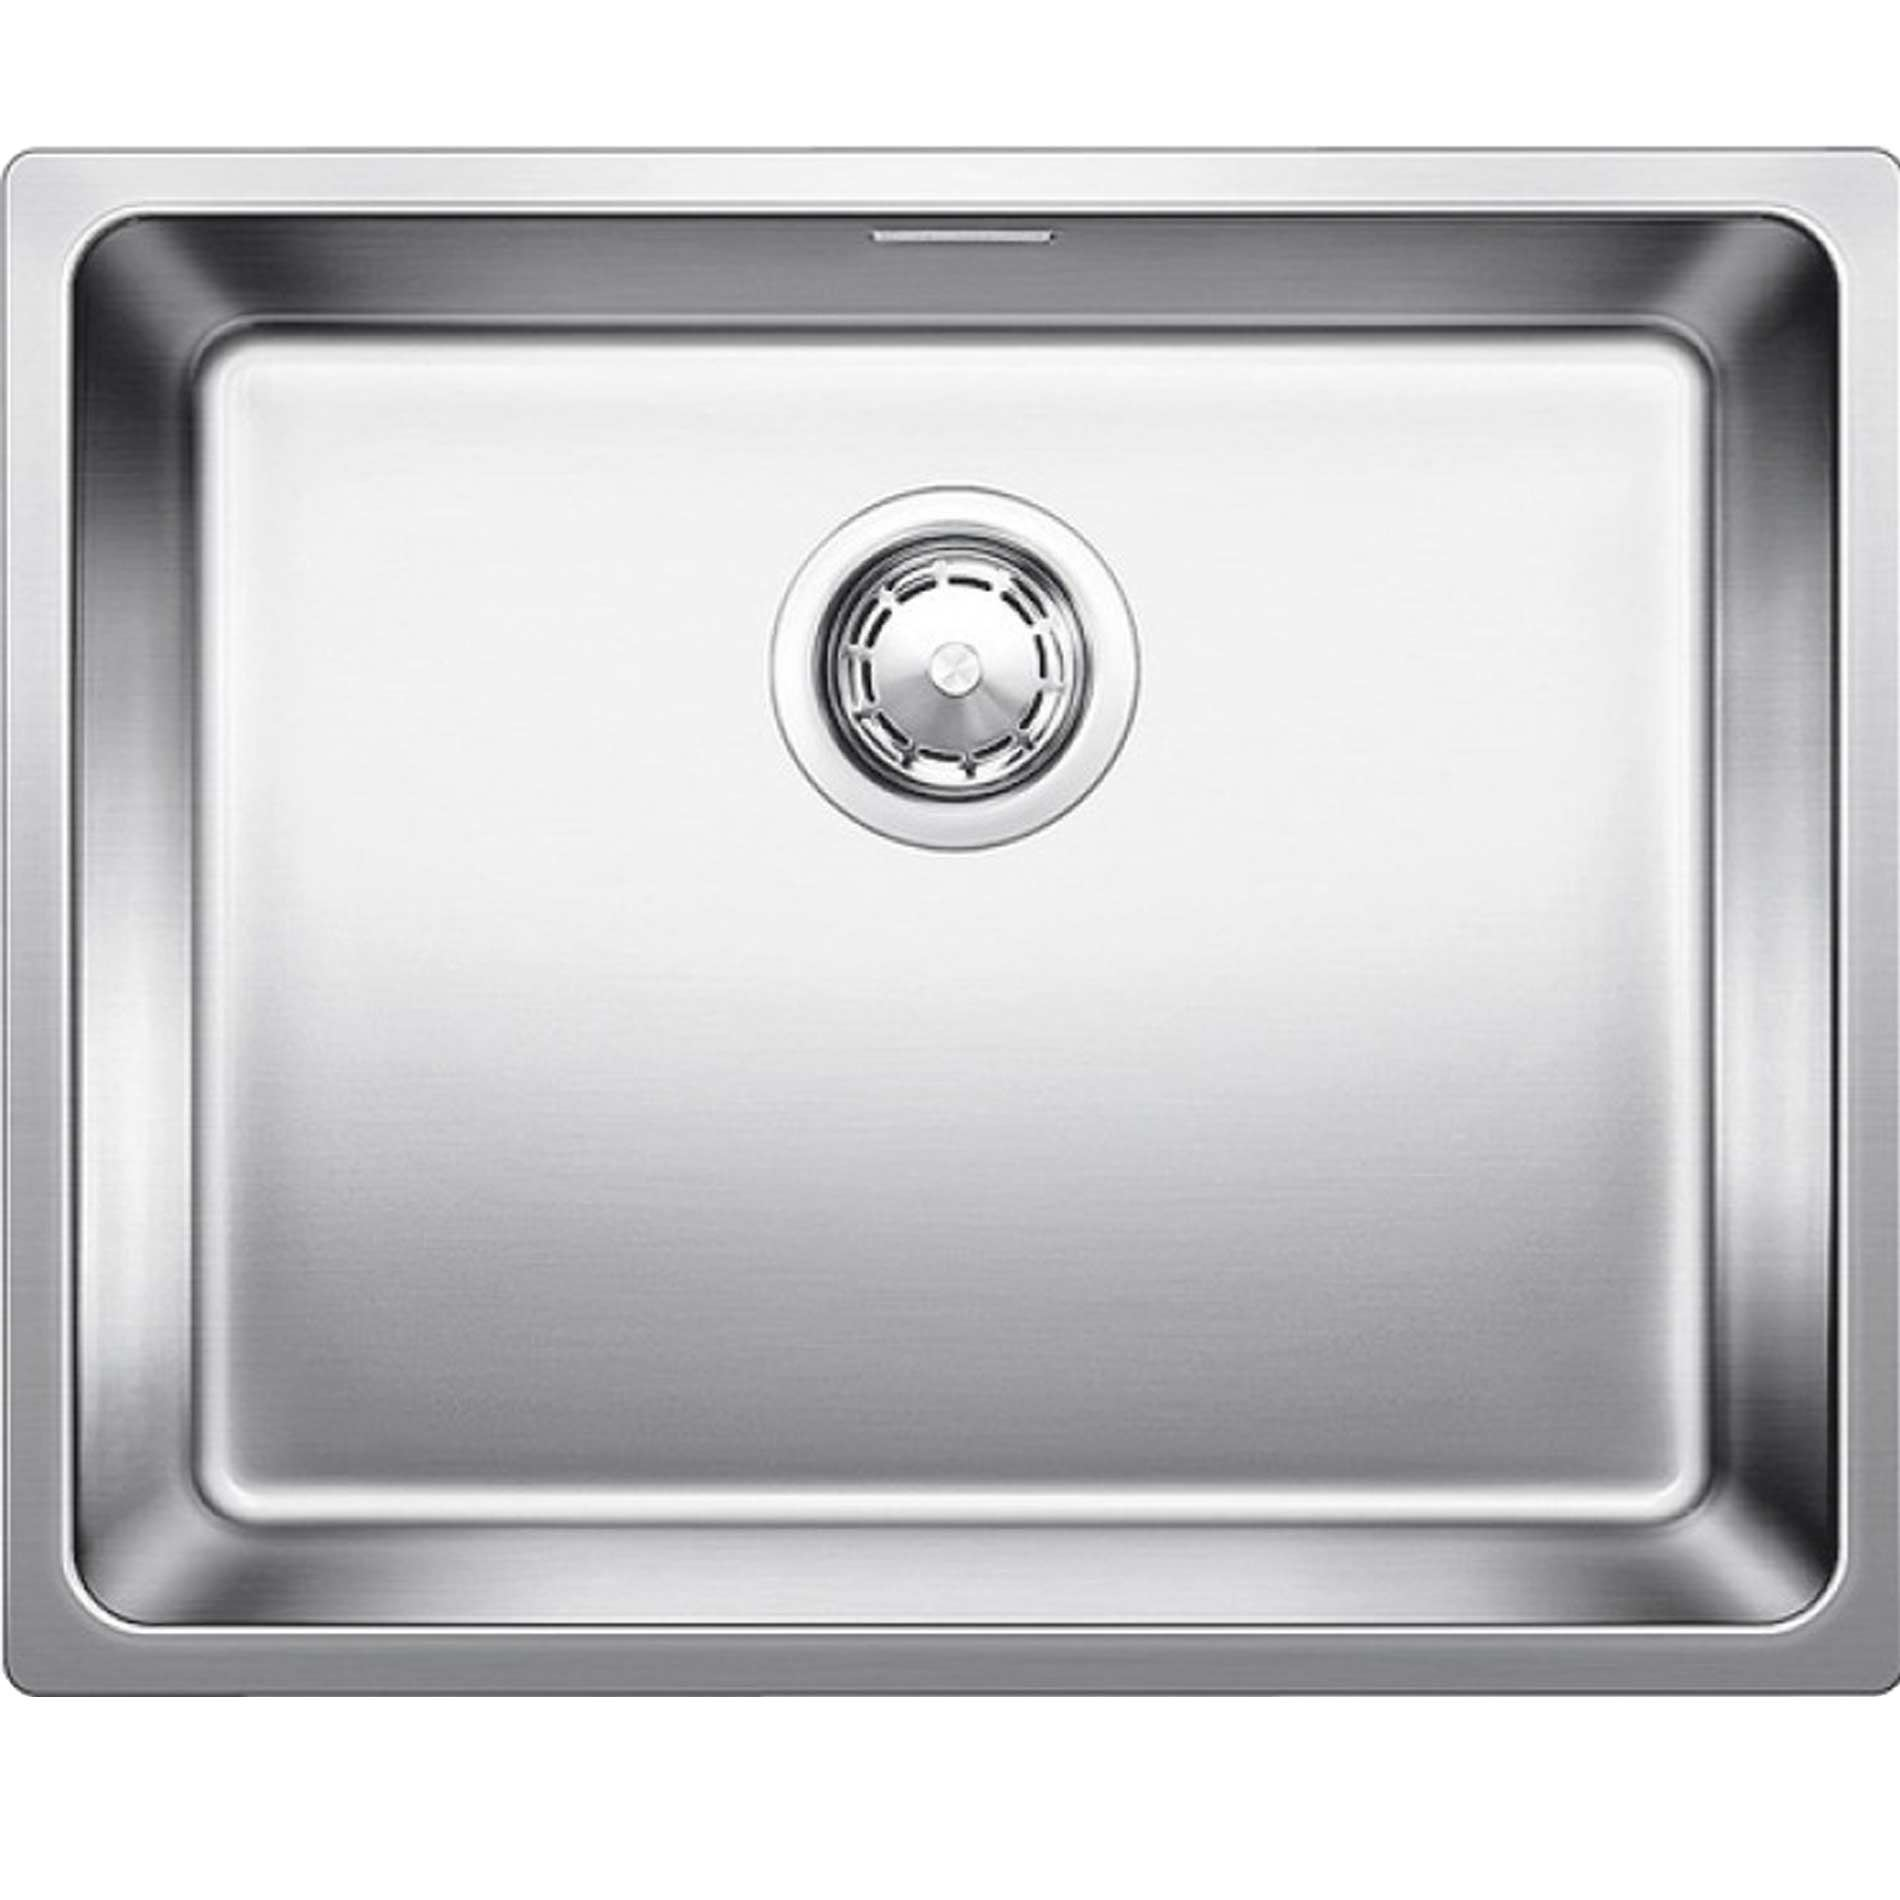 Best Kitchen Sink For Practical Use